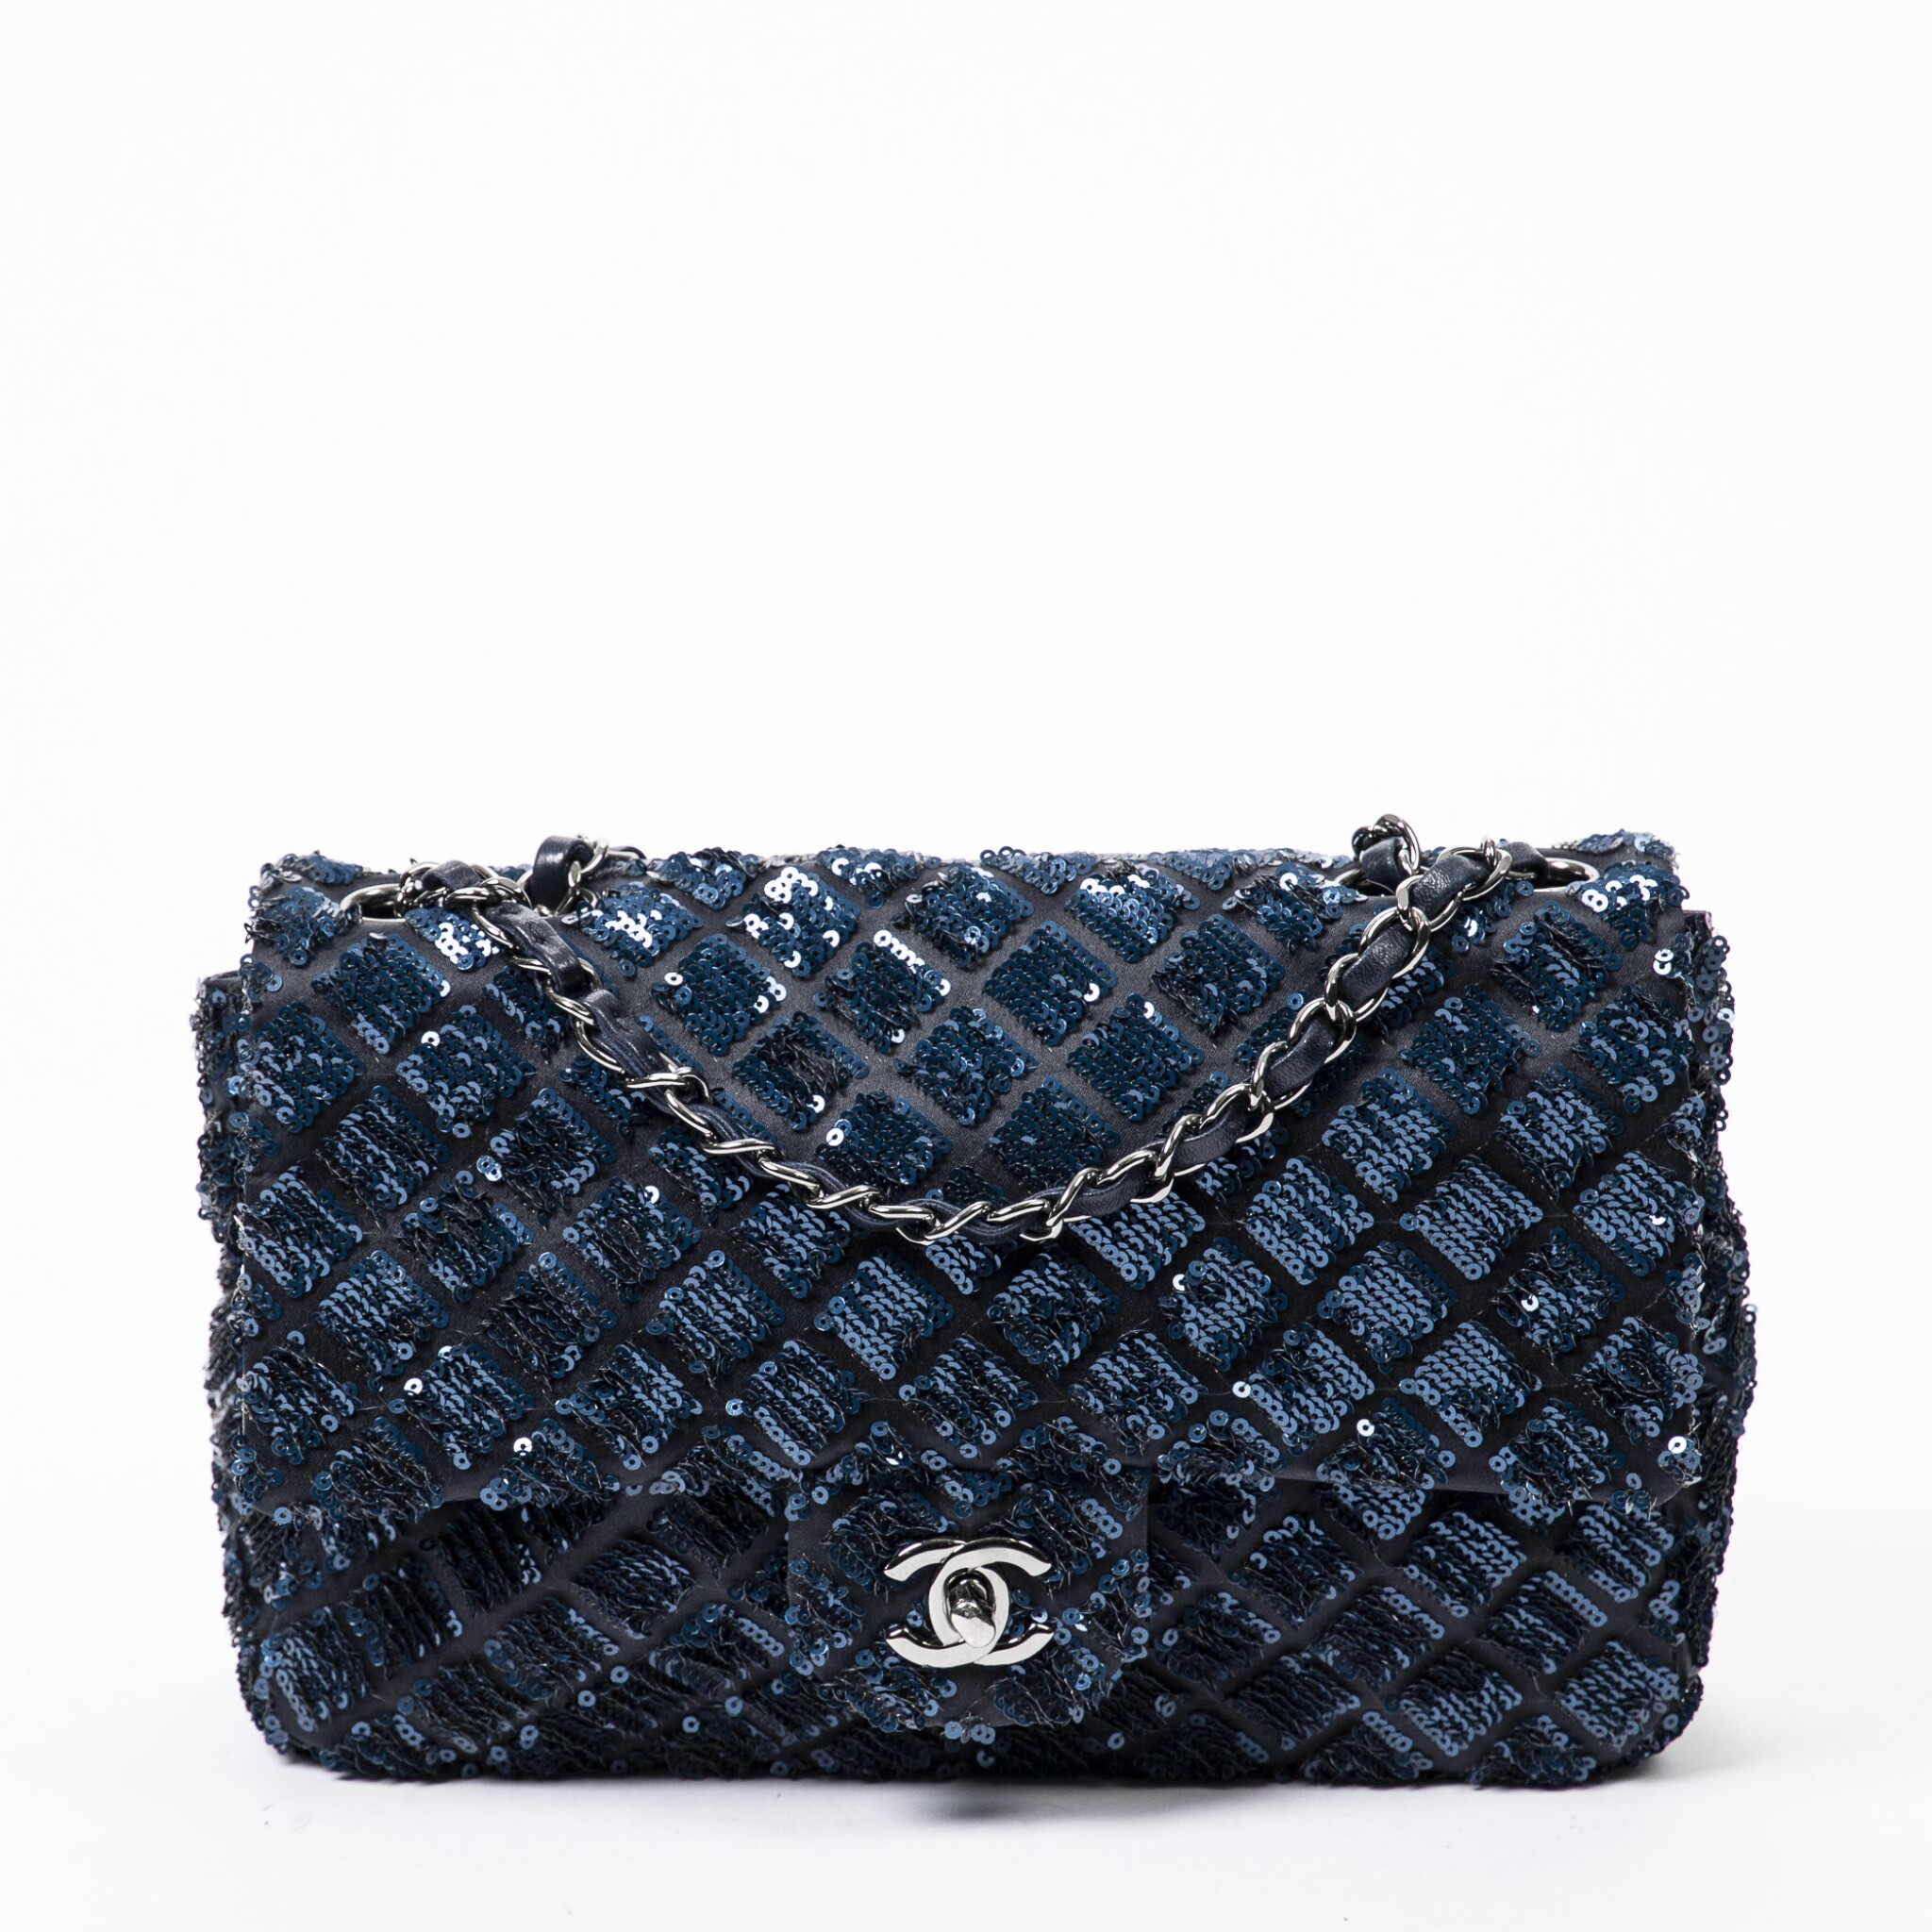 View full screen - View 1 of Lot 41. Dark Blue and Black Classic Single Flap in Quilted Leather and Sequins with Ruthenium Hardware, 2012-2013.